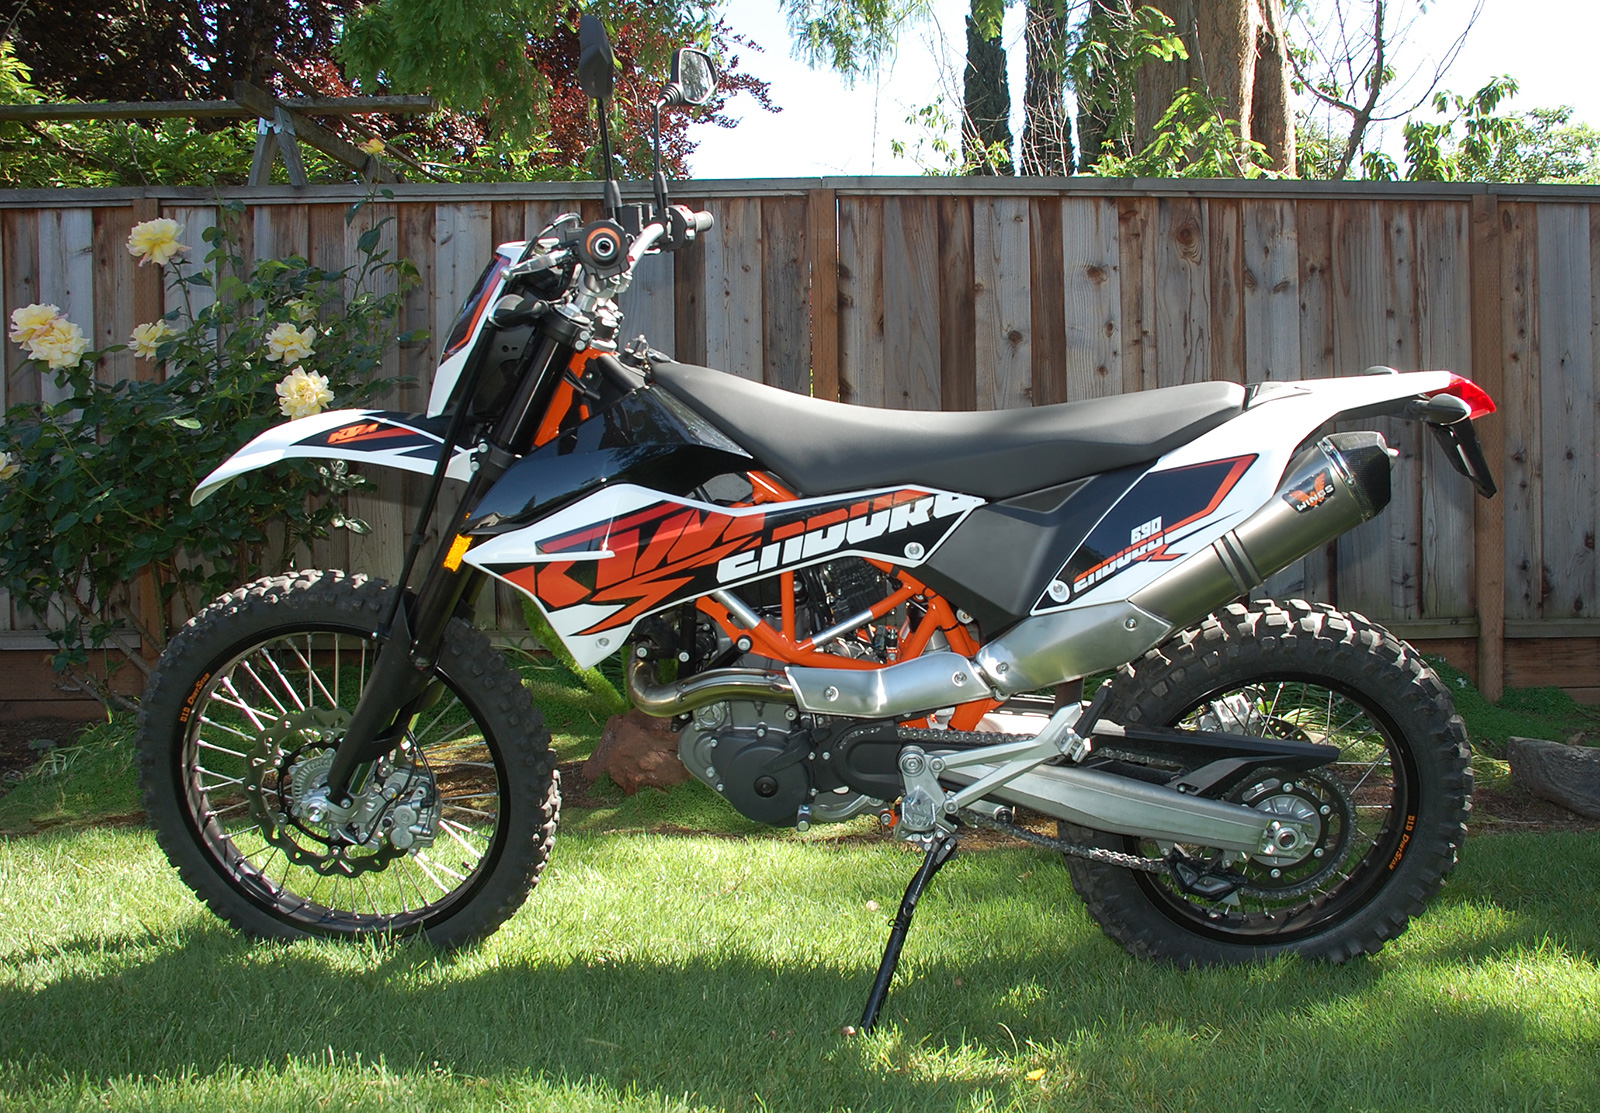 2017 ktm 690 enduro r modifications and repairs south bay riders. Black Bedroom Furniture Sets. Home Design Ideas